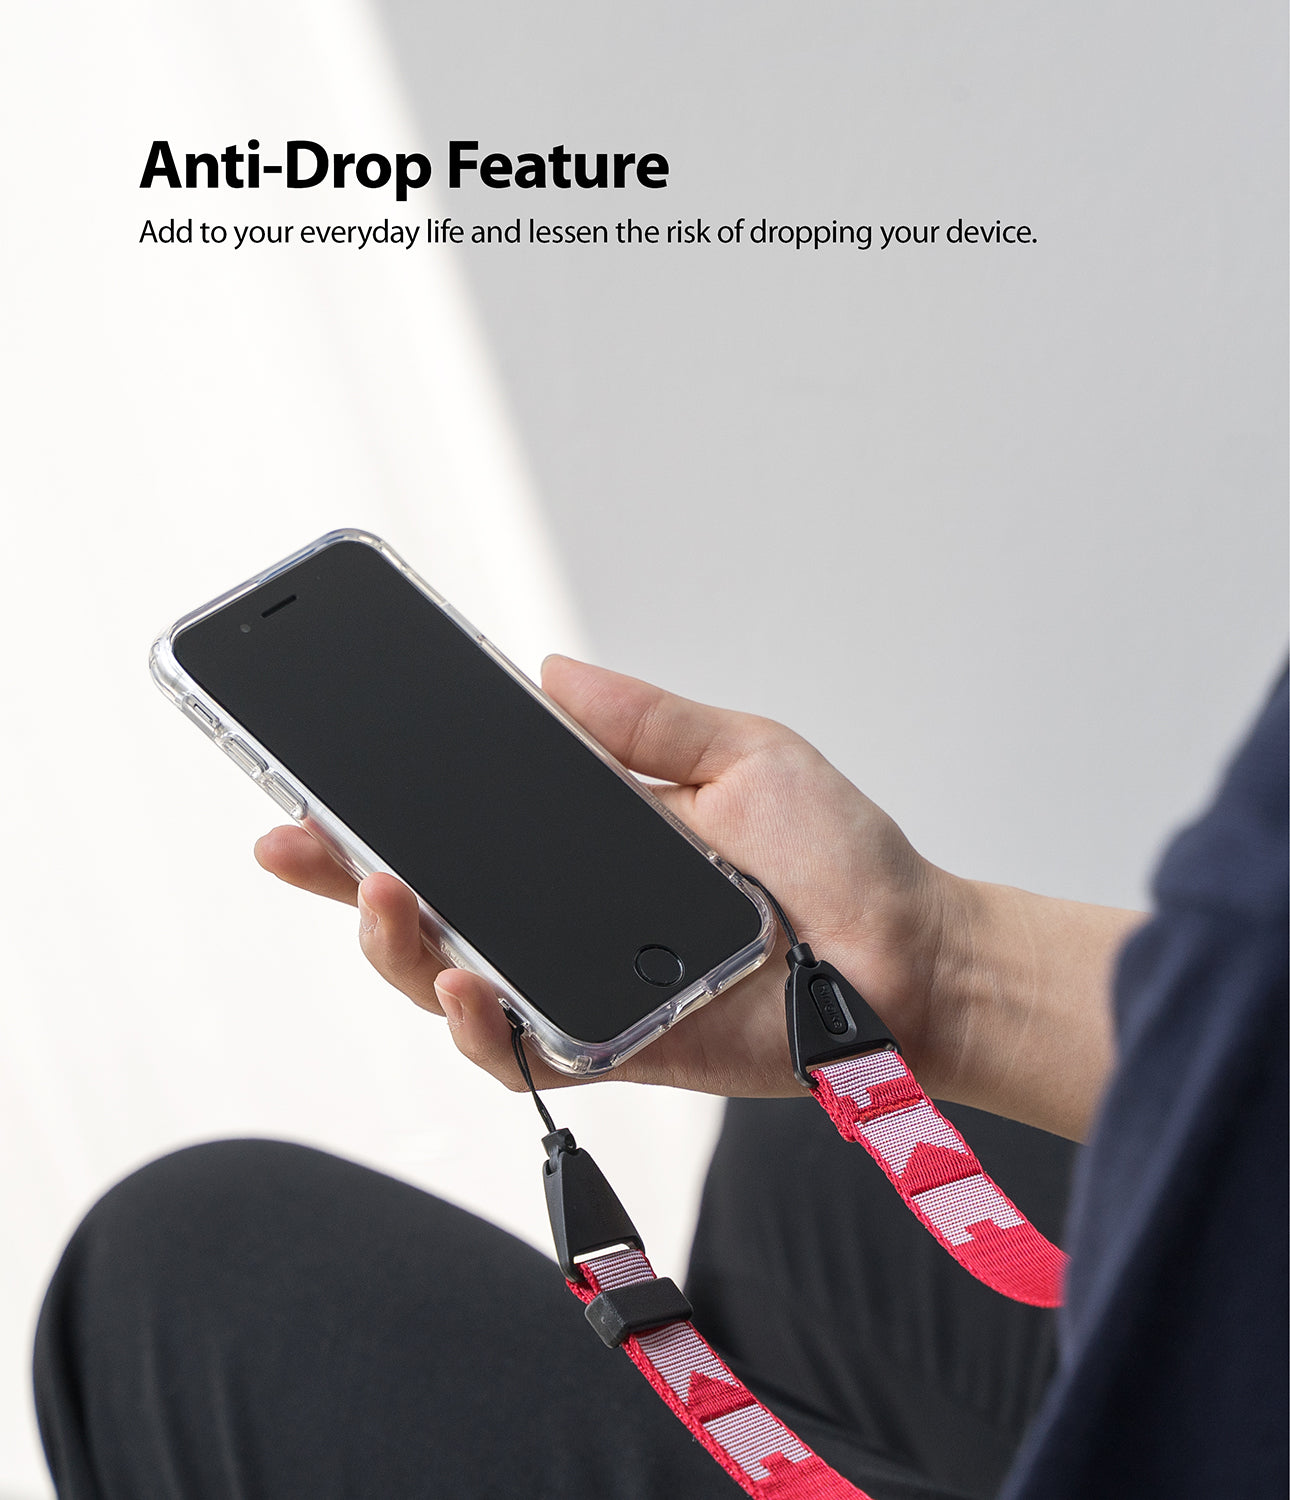 add to your everyday life and lessen the risk of dropping your device